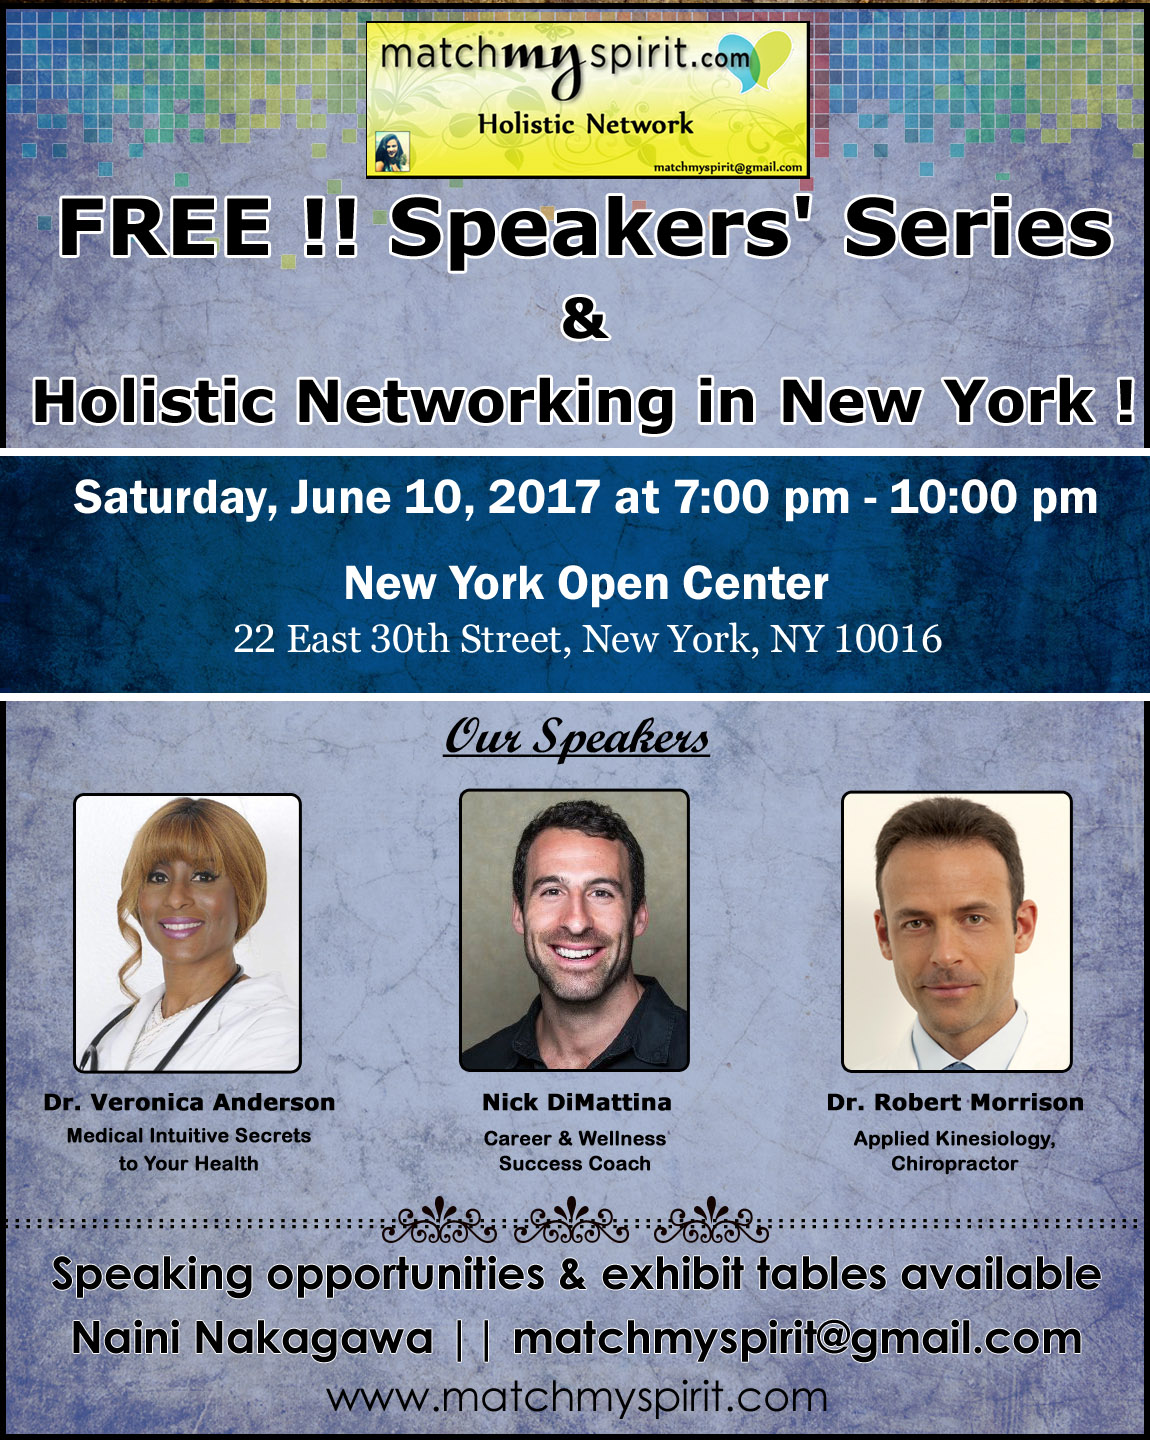 FREE!! Speakers' Series & Holistic Networking in New York